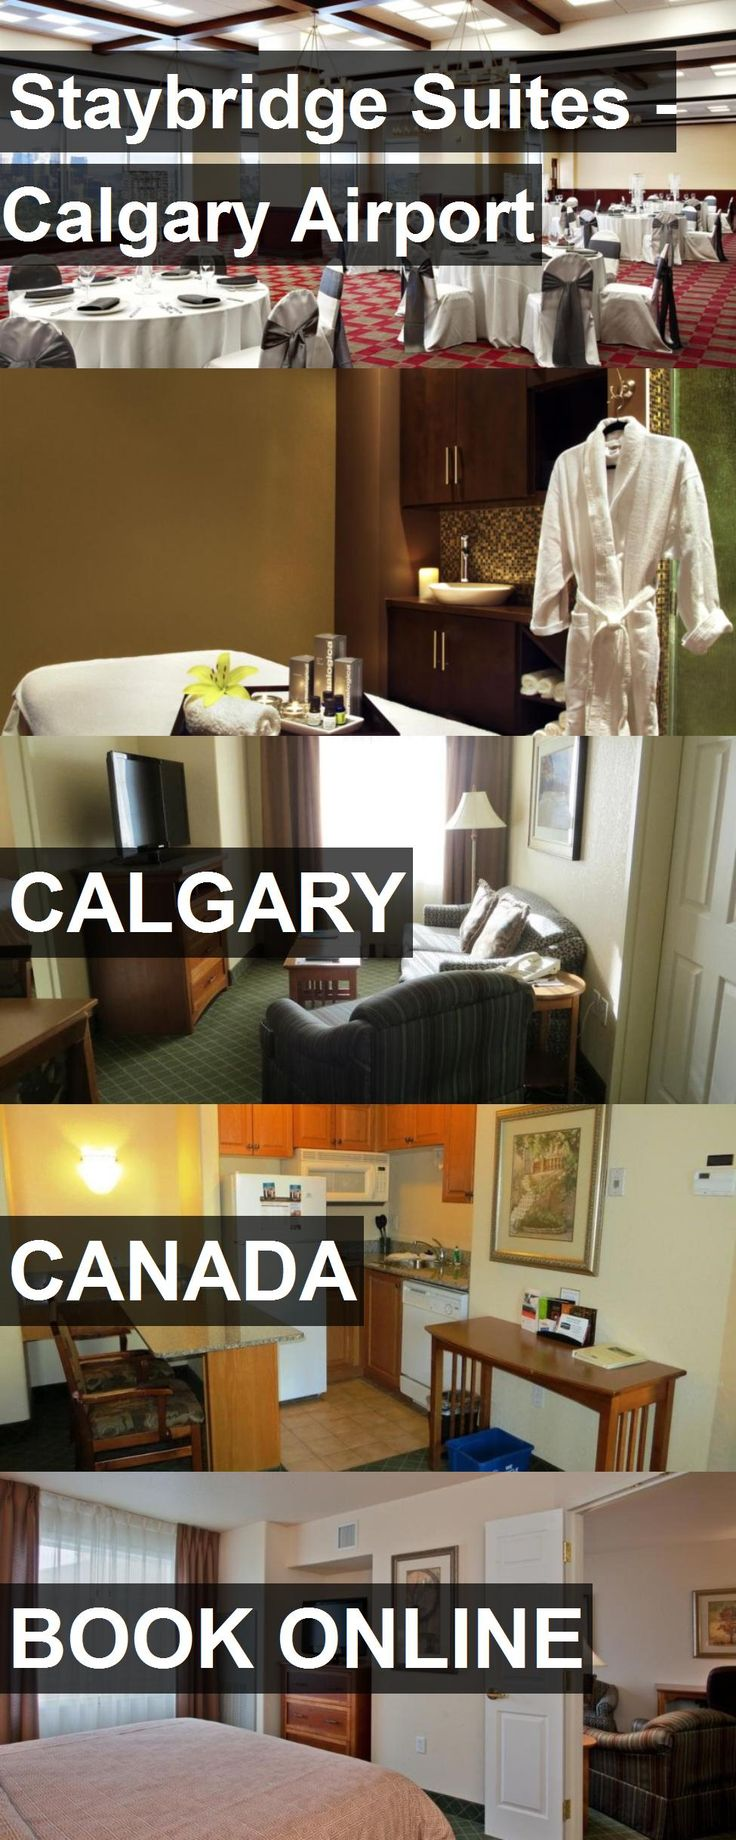 Hotel Staybridge Suites - Calgary Airport in Calgary, Canada. For more information, photos, reviews and best prices please follow the link. #Canada #Calgary #travel #vacation #hotel